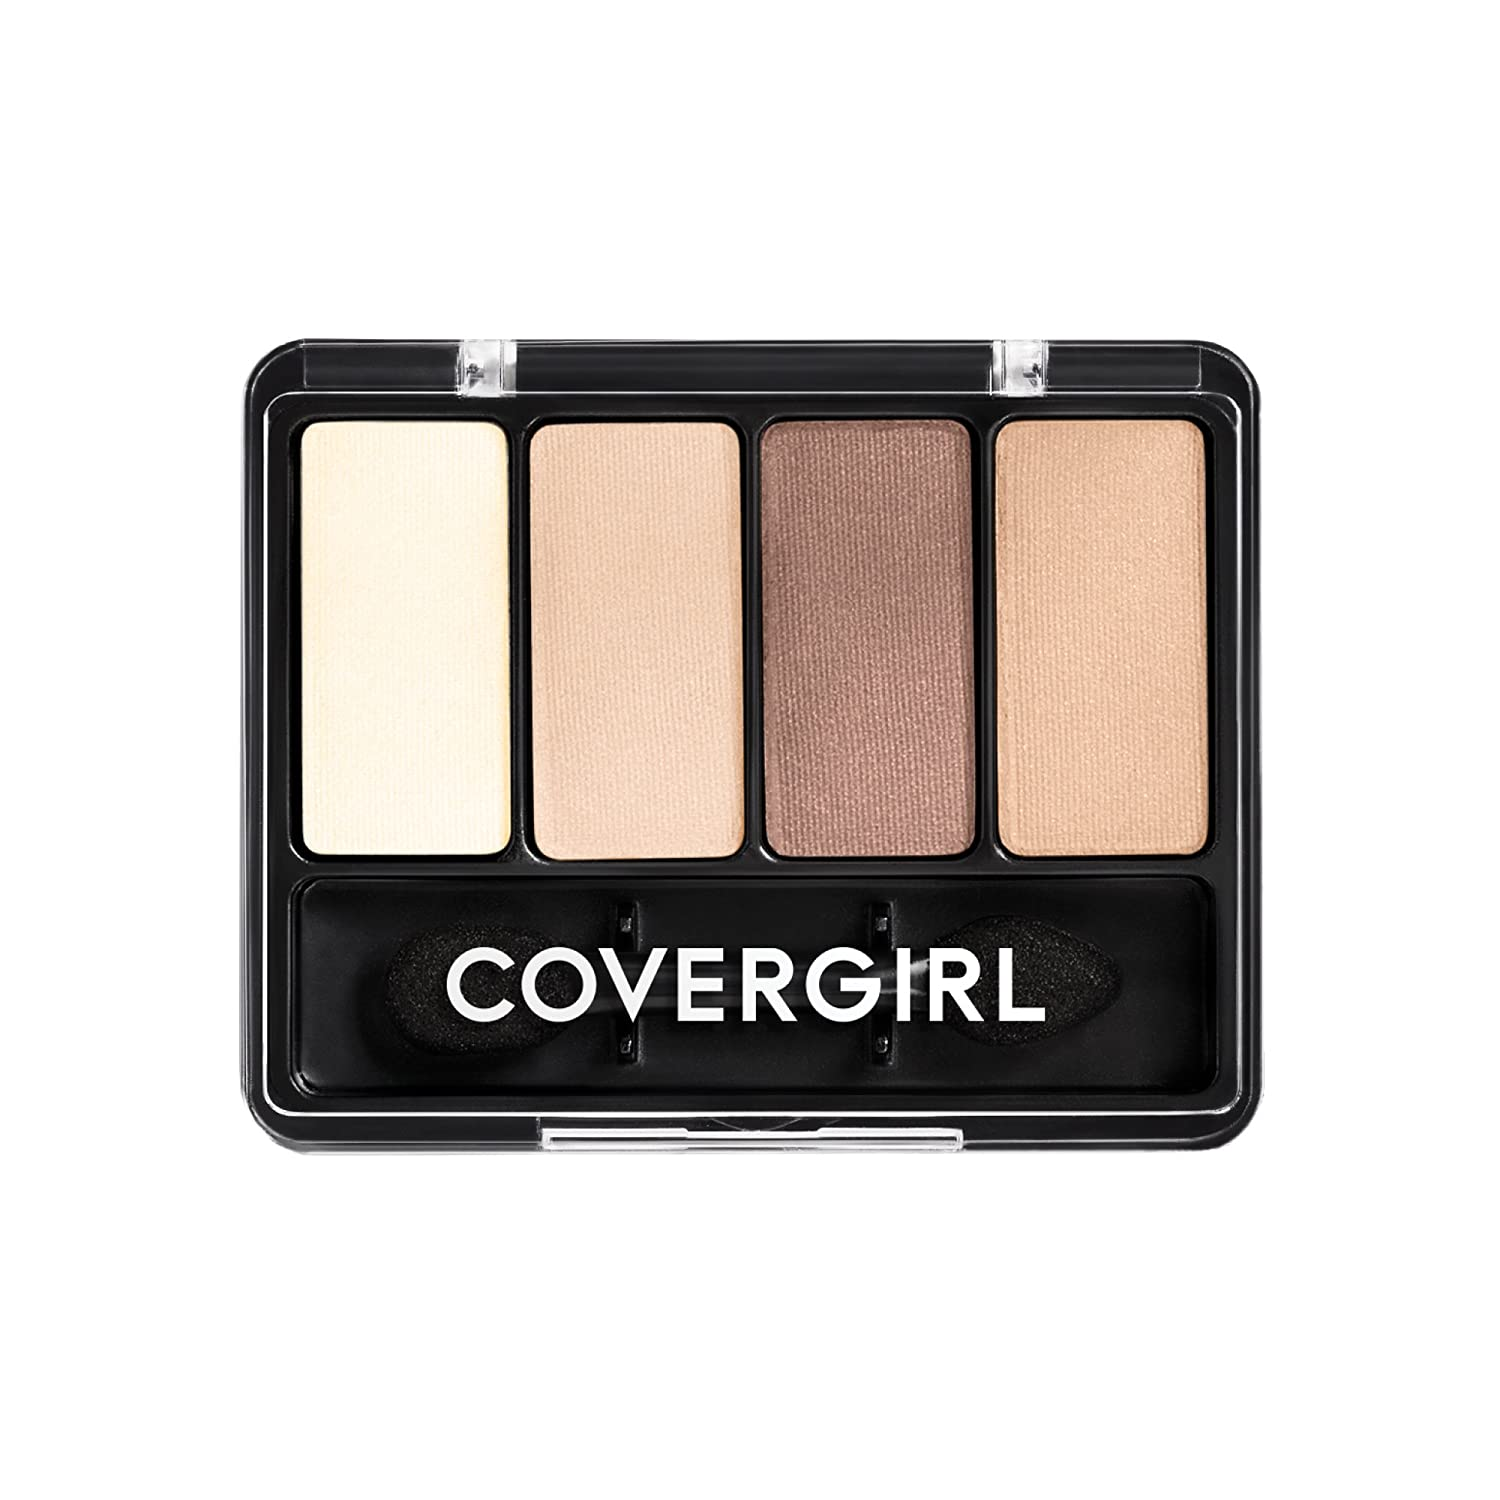 Covergirl Eye Enhancers Eye Shadow Palette, Natural Nudes, 0.19 Ounce